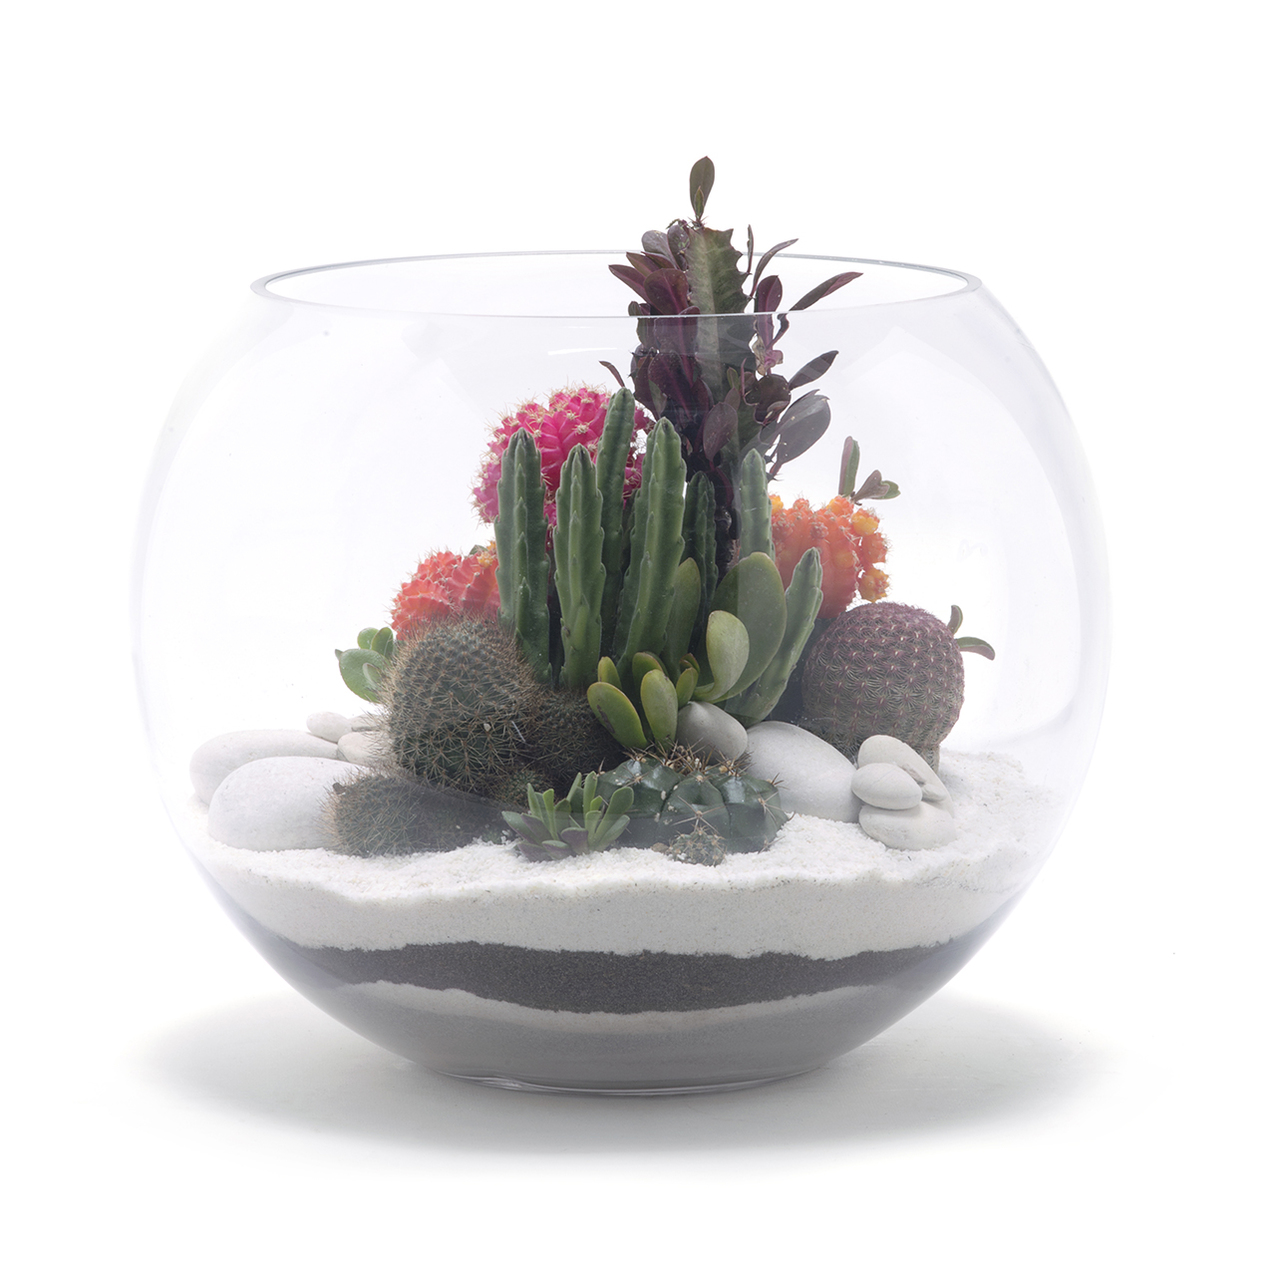 Fishbowl Terrarium Large White 12 5 H X 15 D Plant The Future